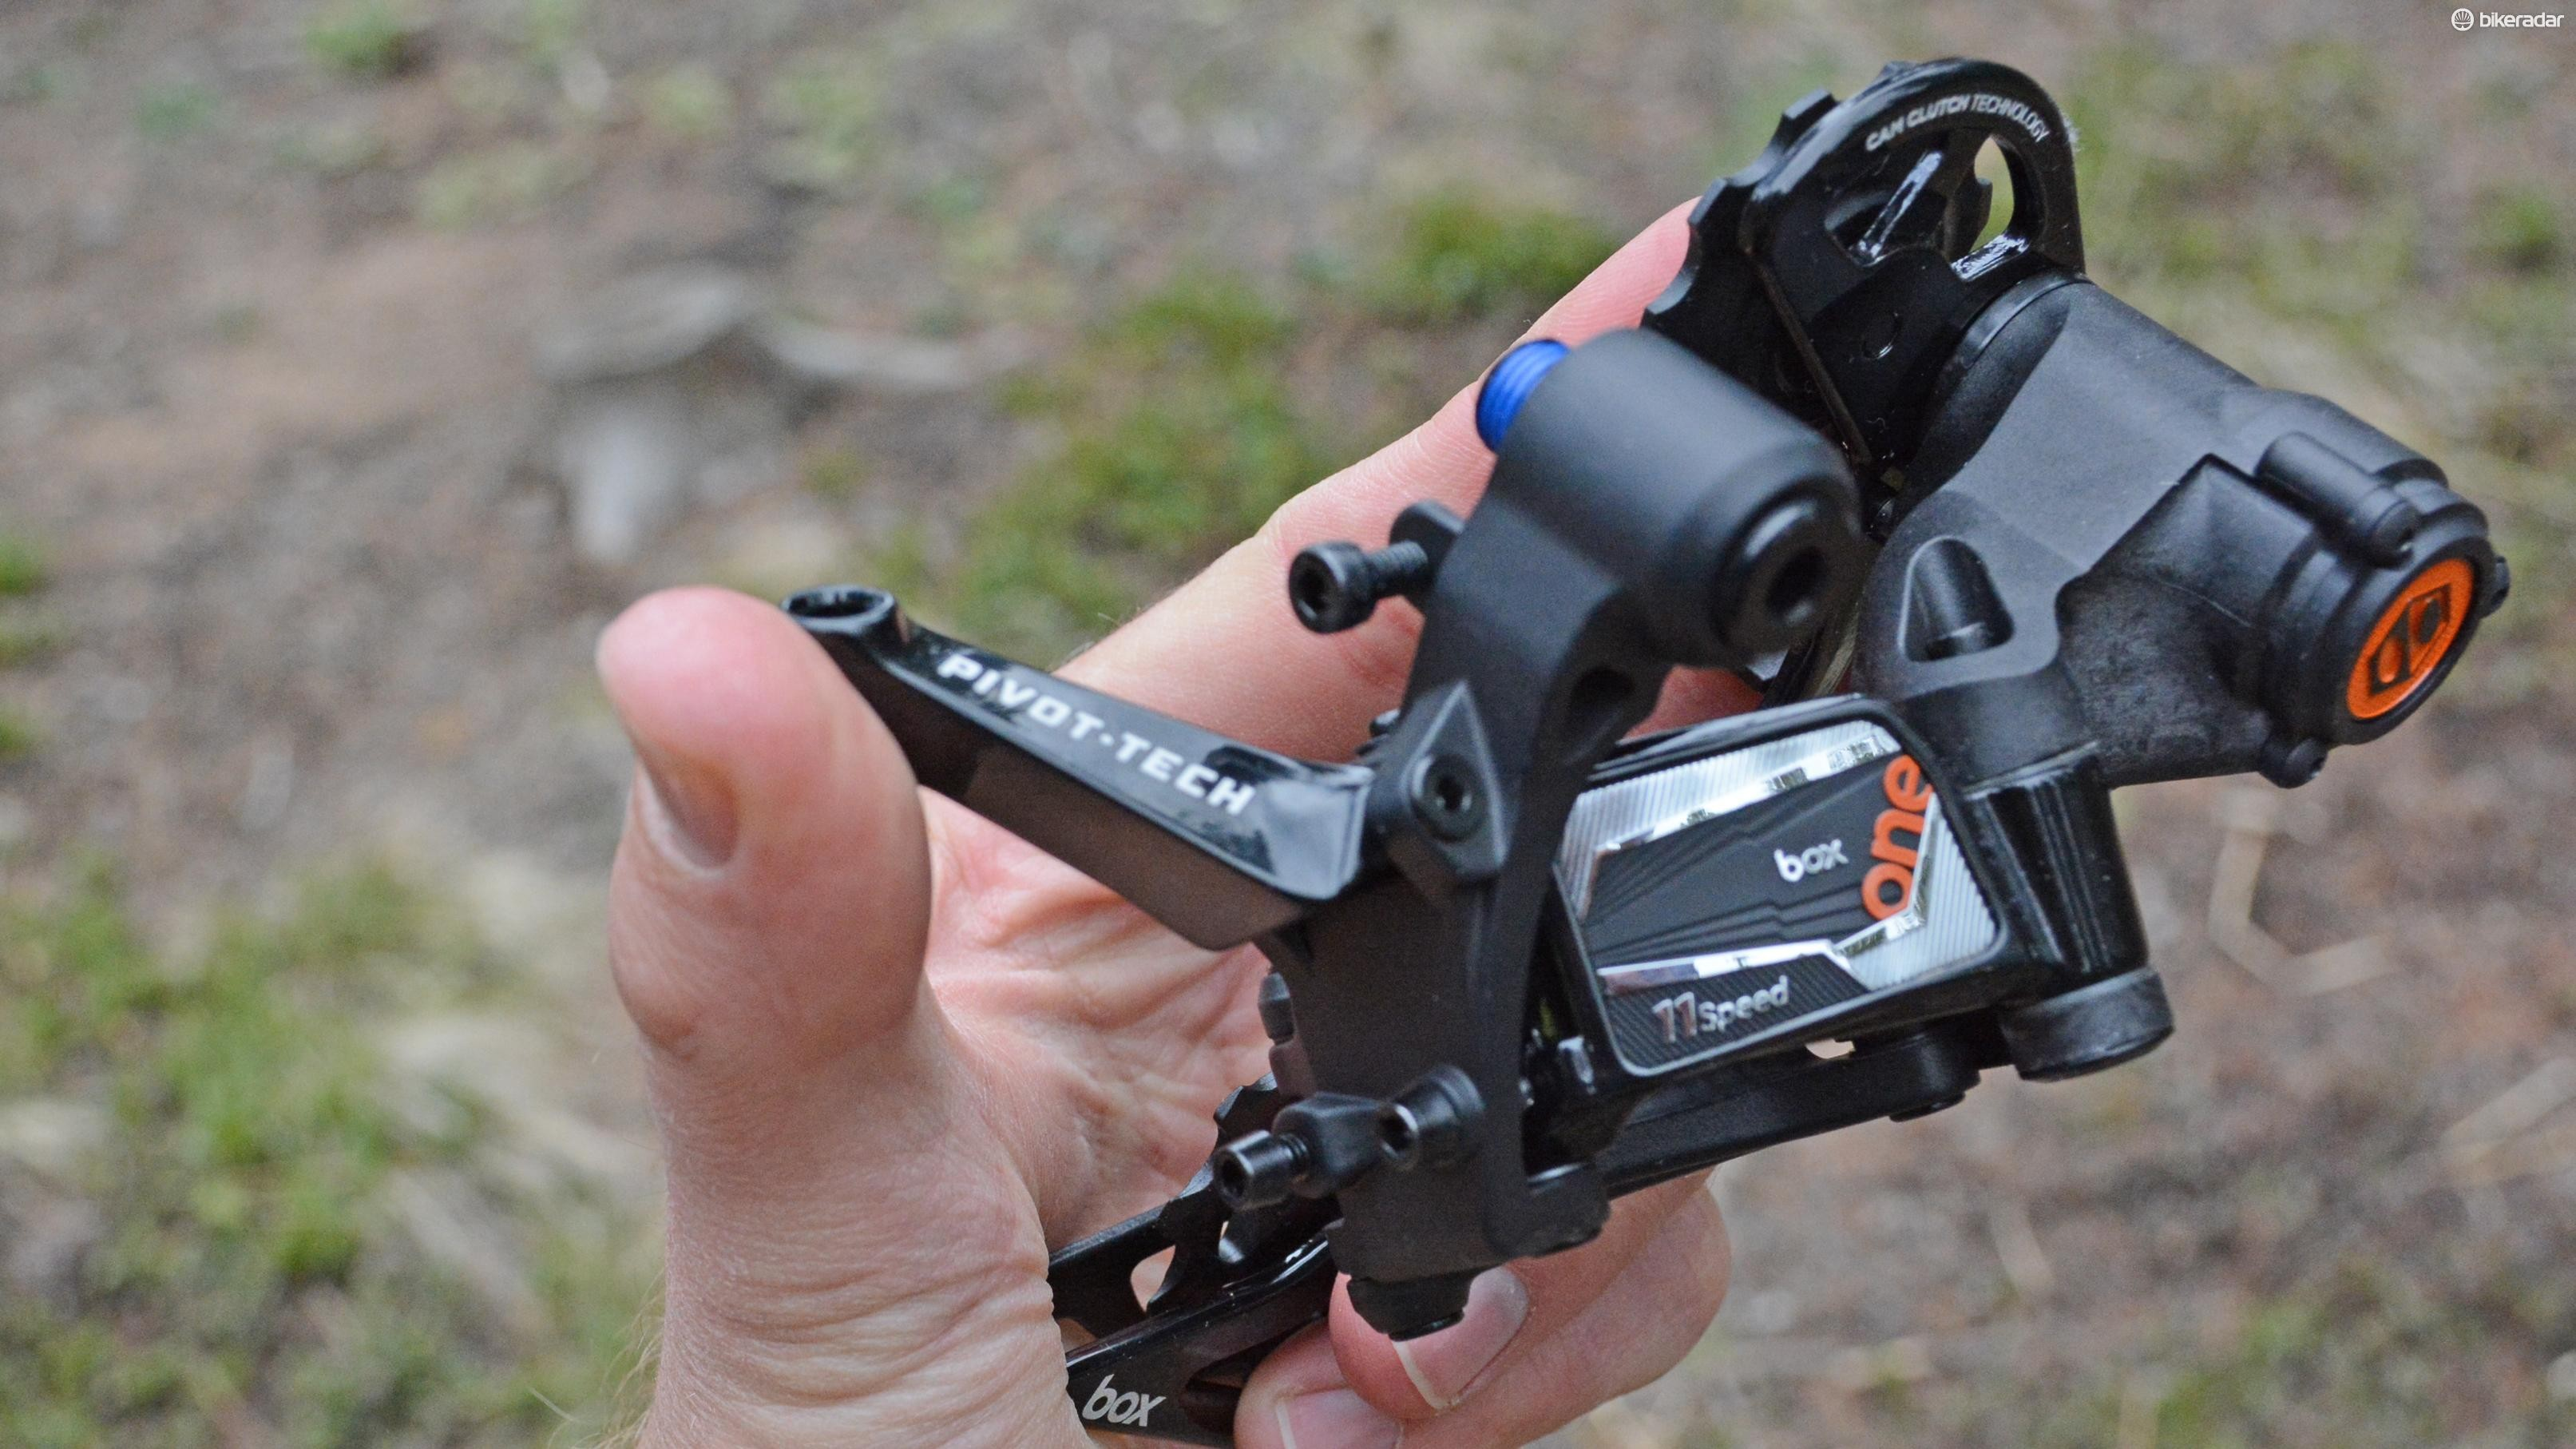 Pivot Tech is a spring-loaded cable stay that keeps the gear housing out of harm's way